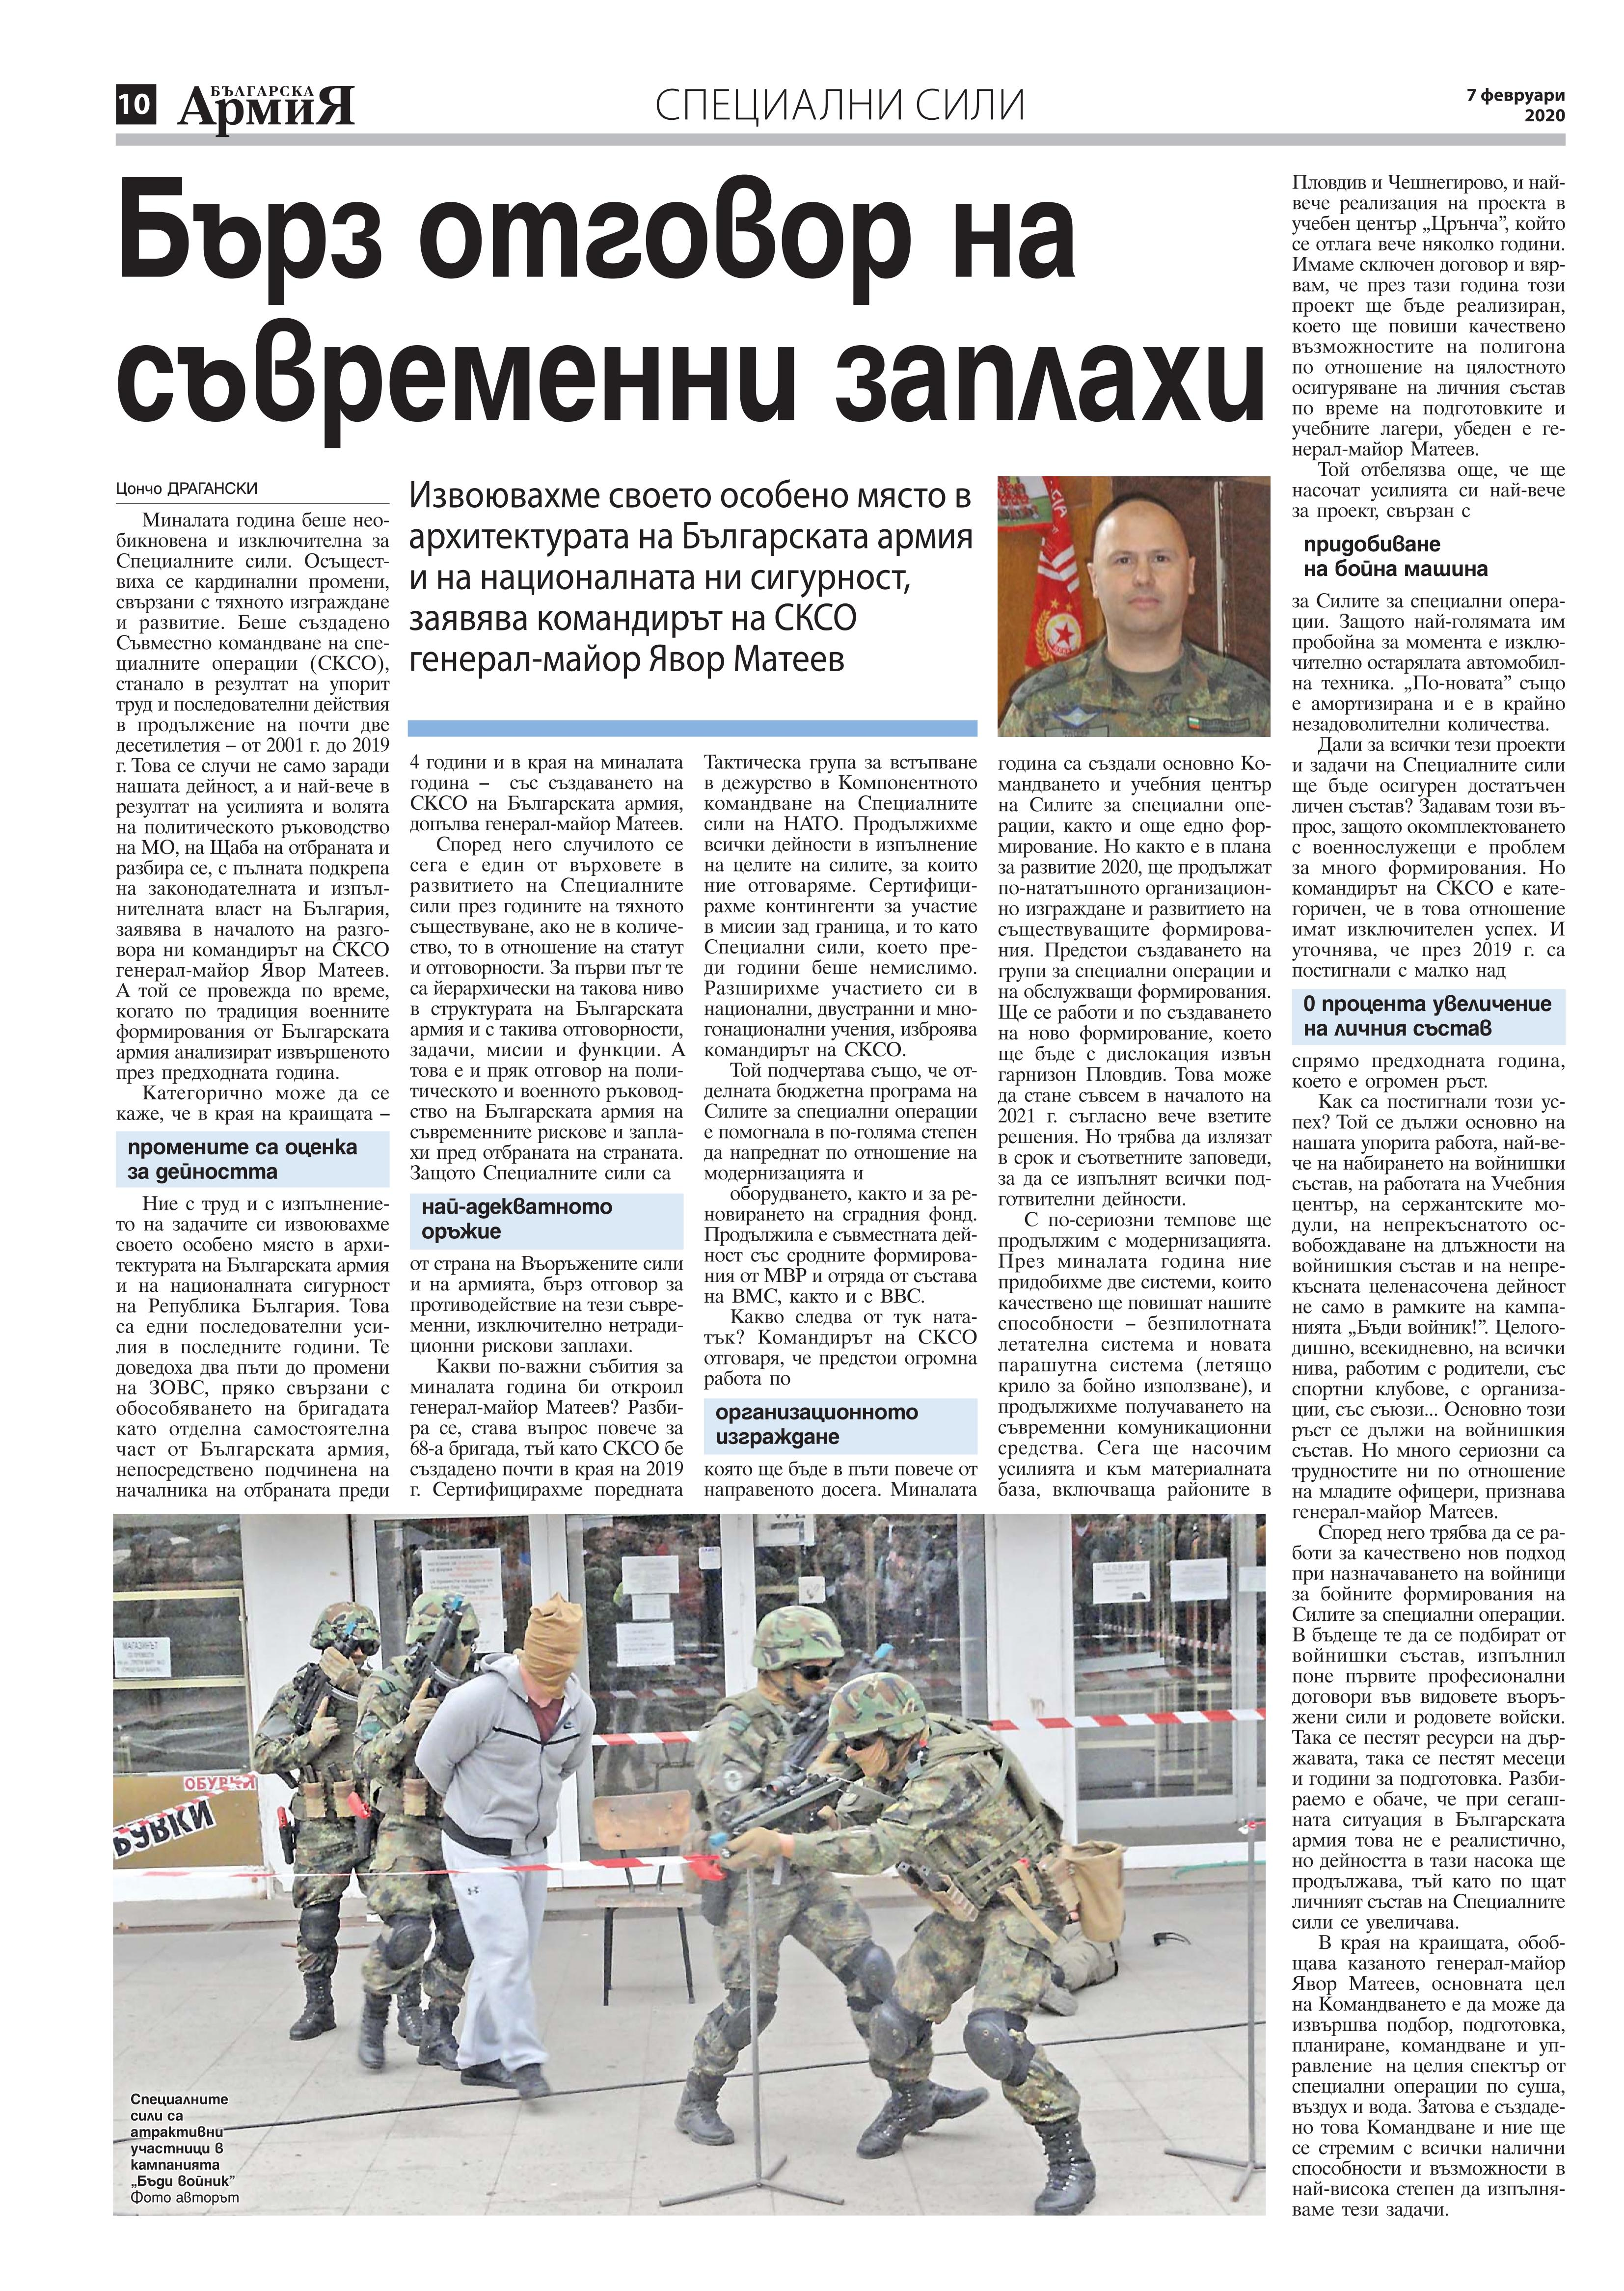 https://www.armymedia.bg/wp-content/uploads/2015/06/10.page1_-126.jpg